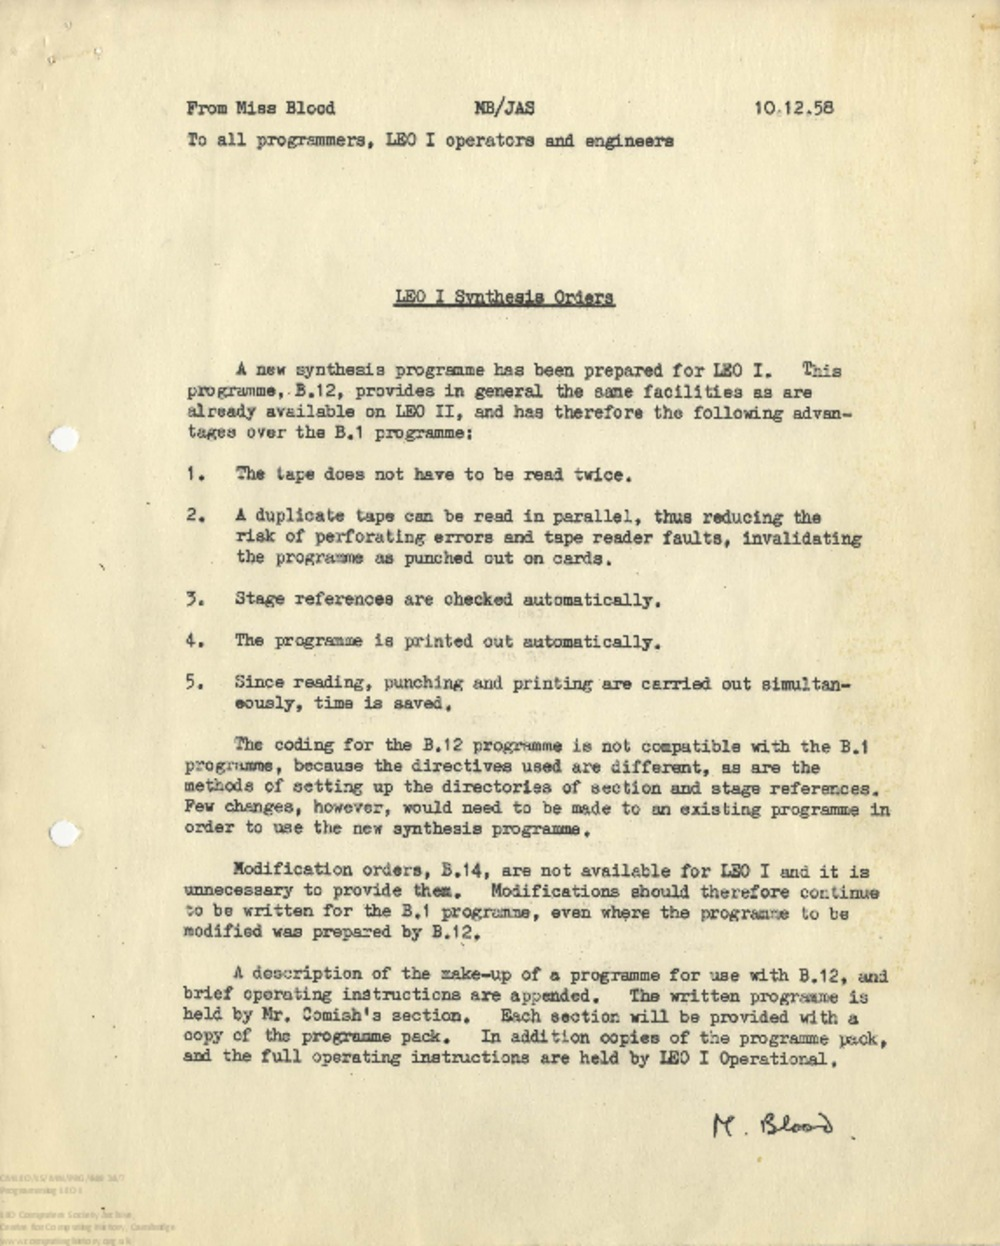 Article: 65270 Programming LEO I: New Synthesis Orders, 10th Dec 1958